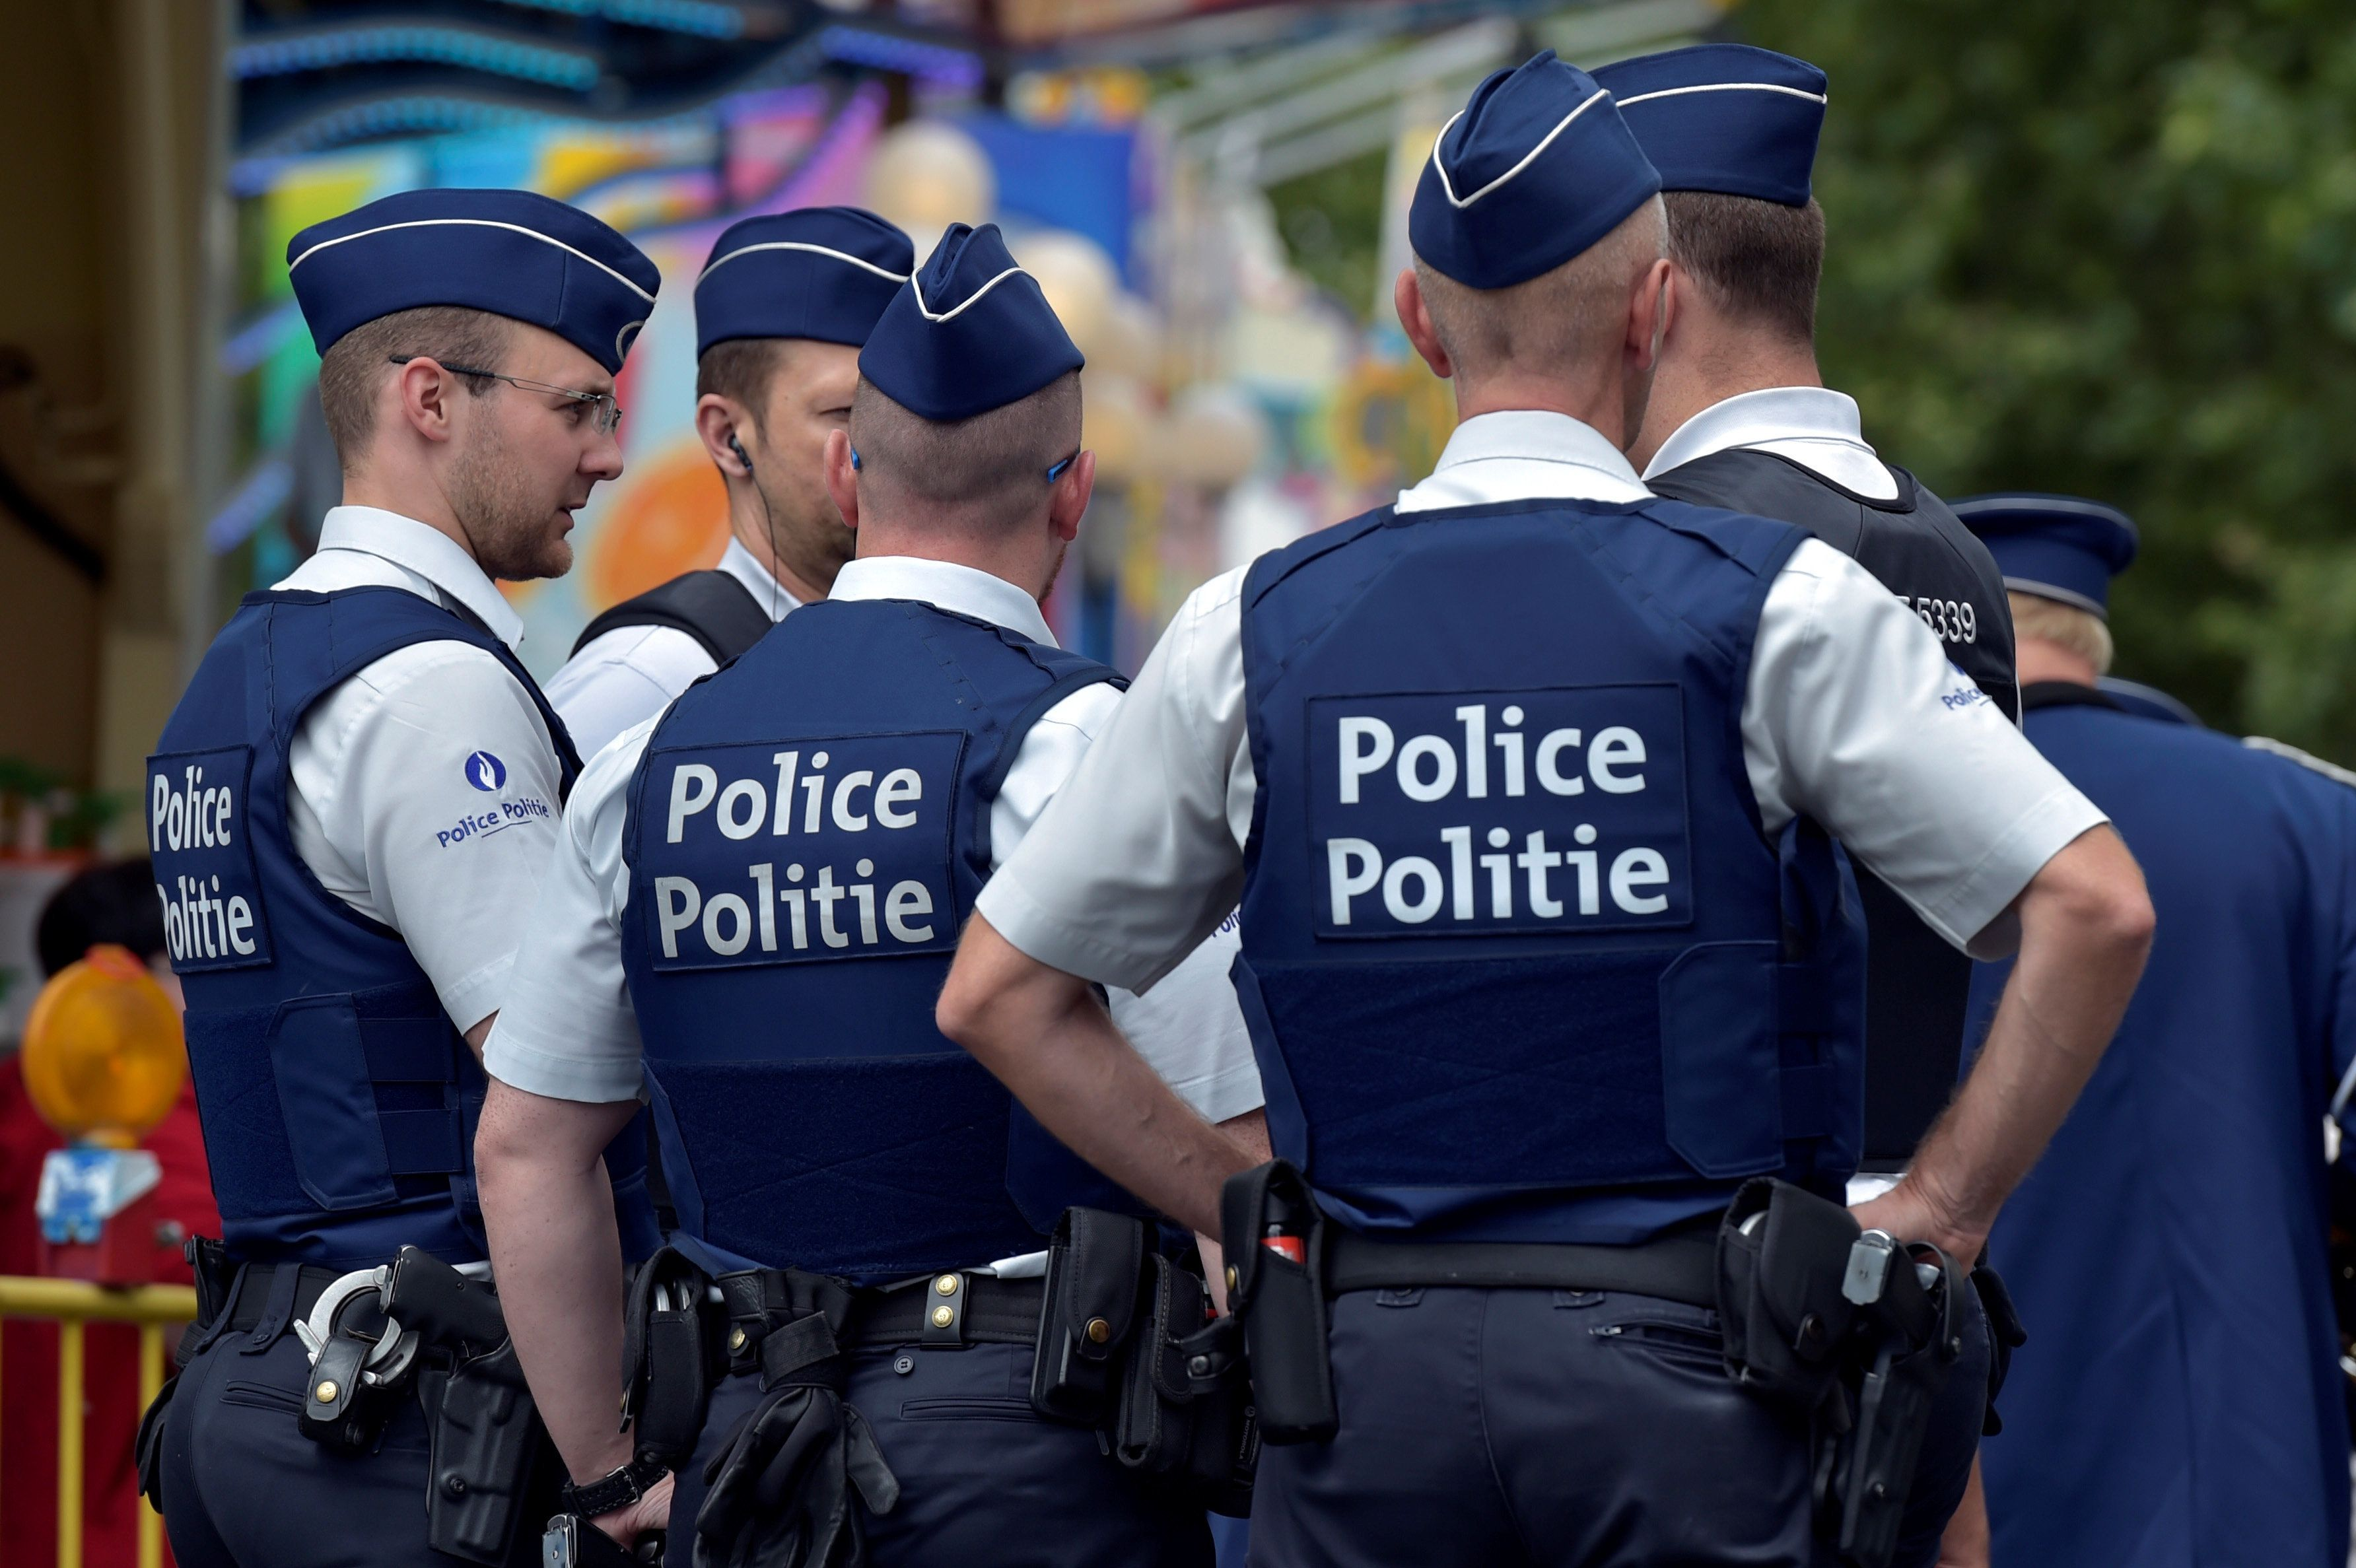 A man armed with a machete attacked two police officers in Belgium before being shot (stock